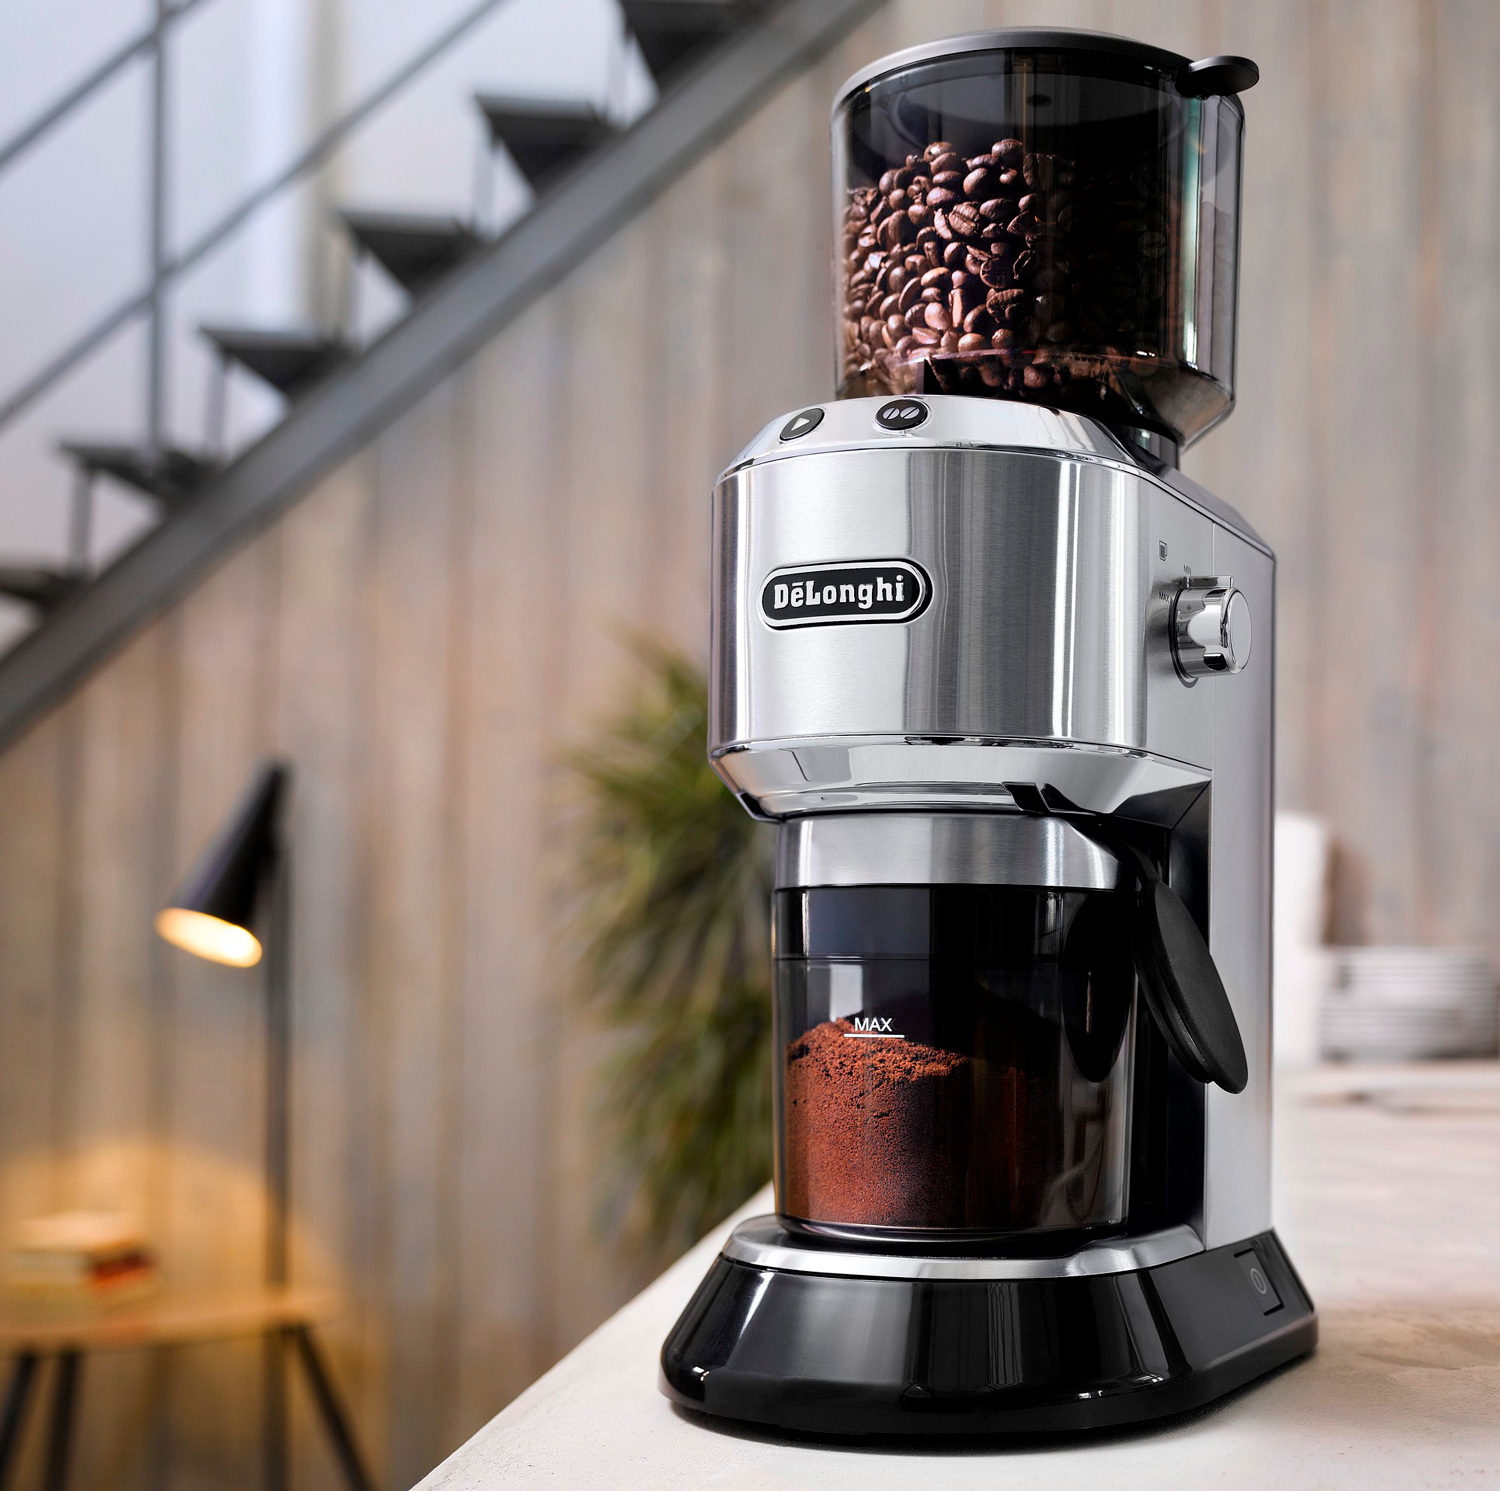 a coffee grinding machine placed on a table